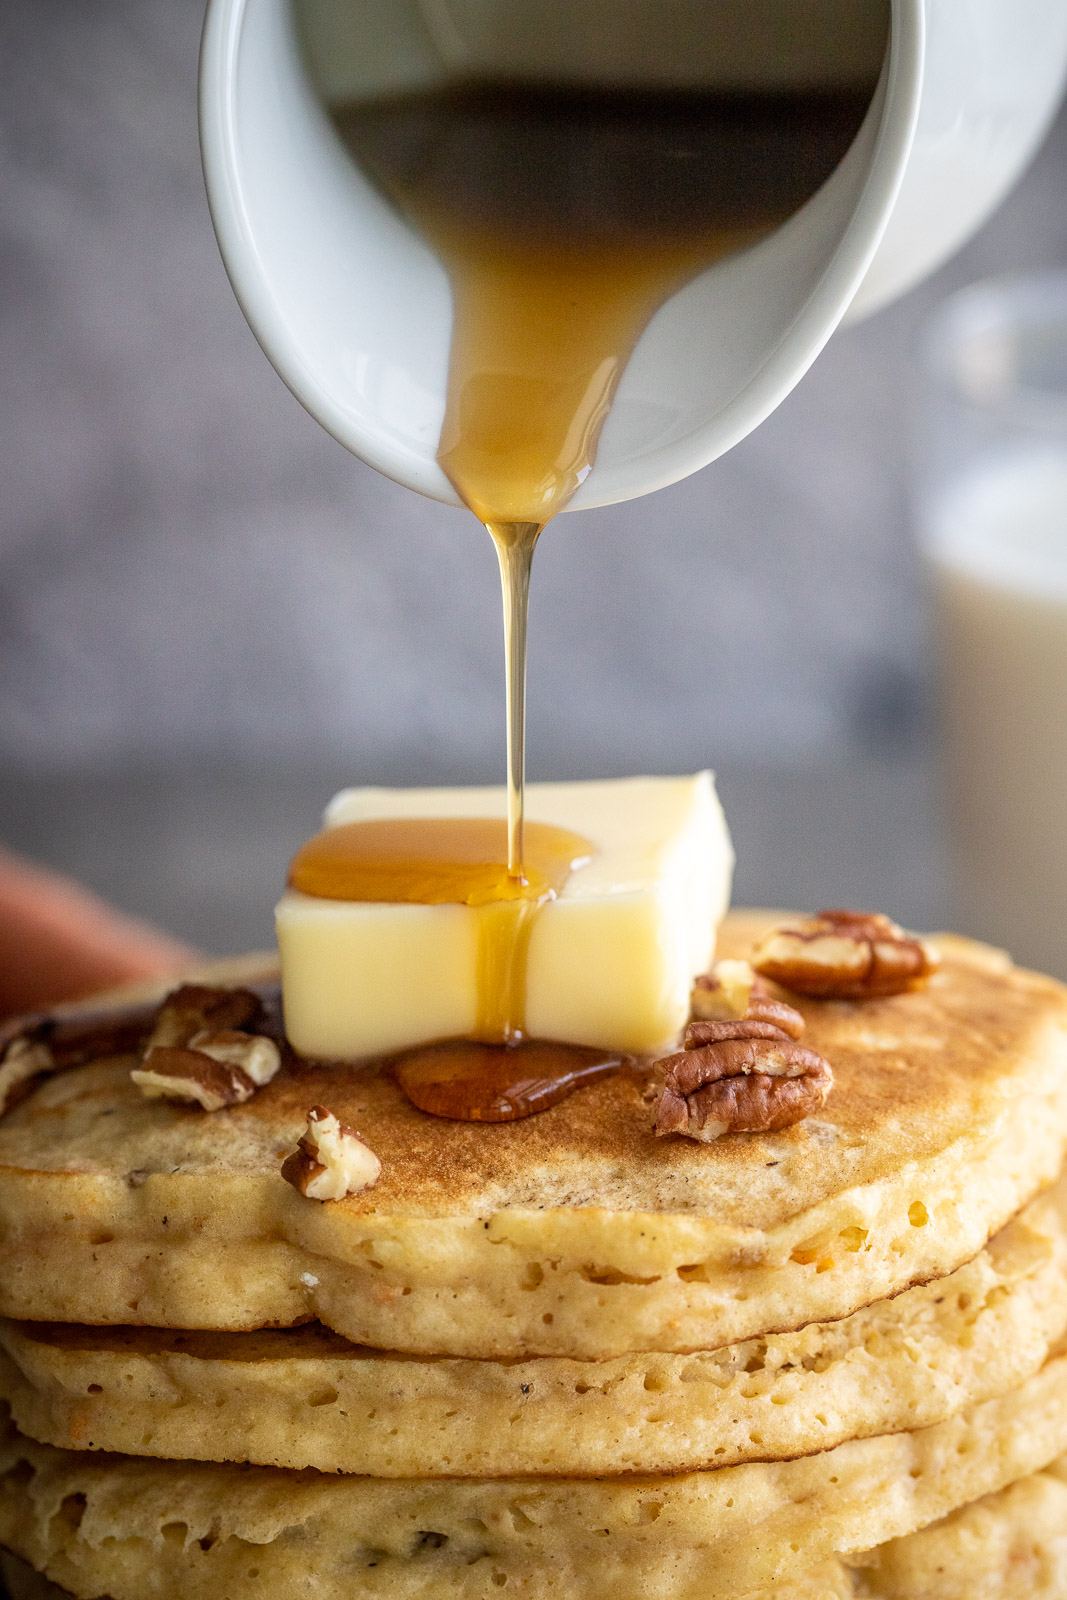 Pouring pure maple syrup on a stack of healthy carrot cake pancakes.